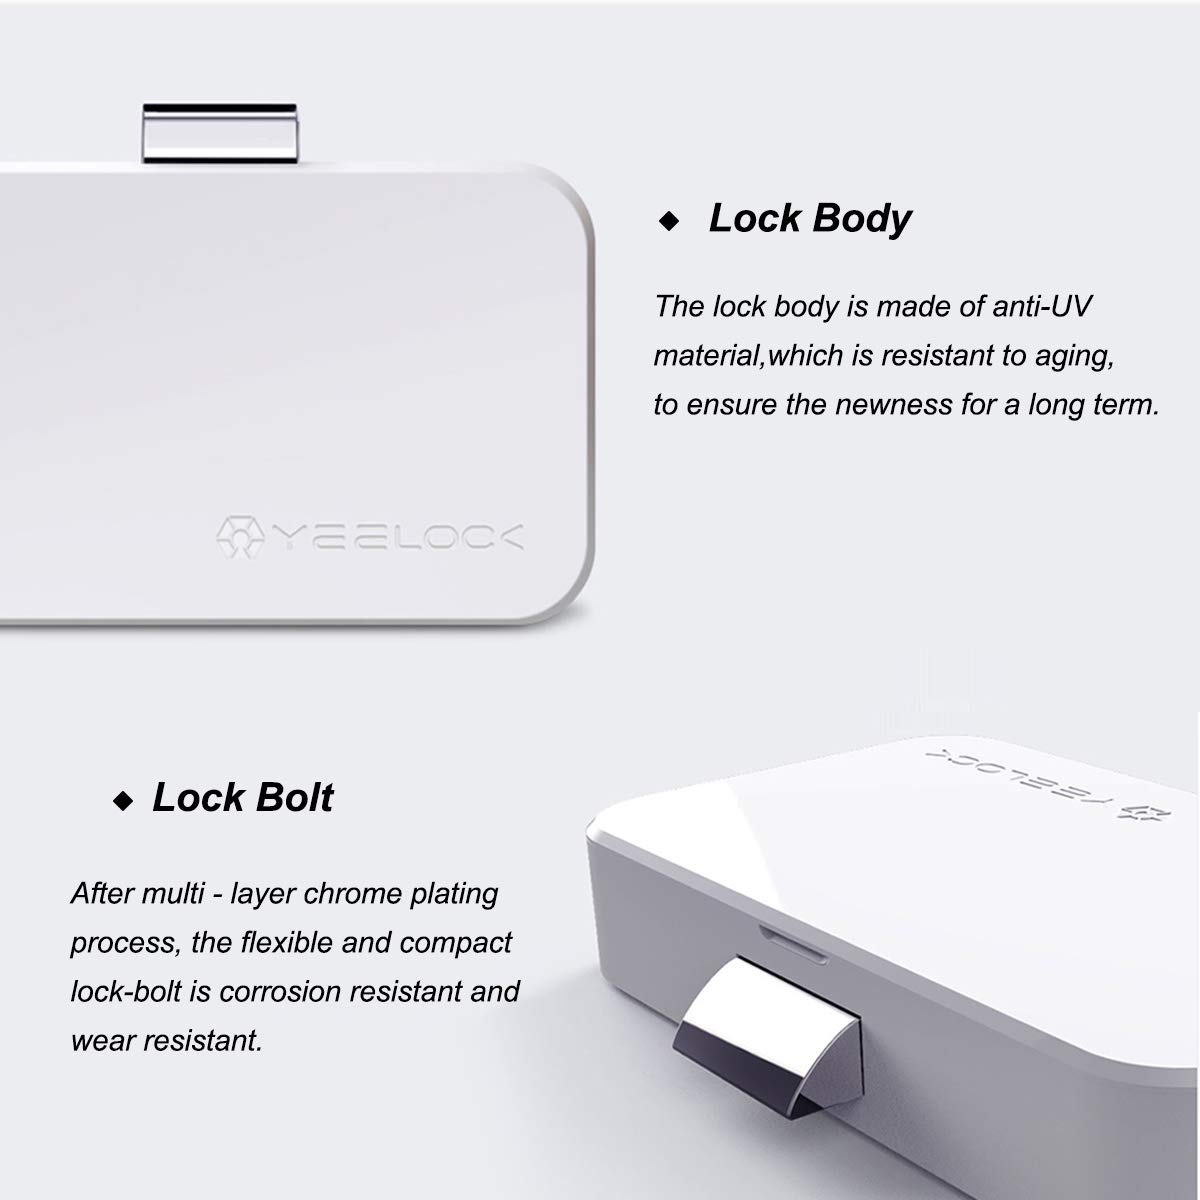 Cabinet Lock, Keyless Smart Lock for Drawer and Cabinet Bluetooth Smart Lock Perfectly for Bookcase, Bedside Table or Filing Cabinet, Support Android/iOS APP Unlock, Authorized Electric Key by YEELOC (Image #9)